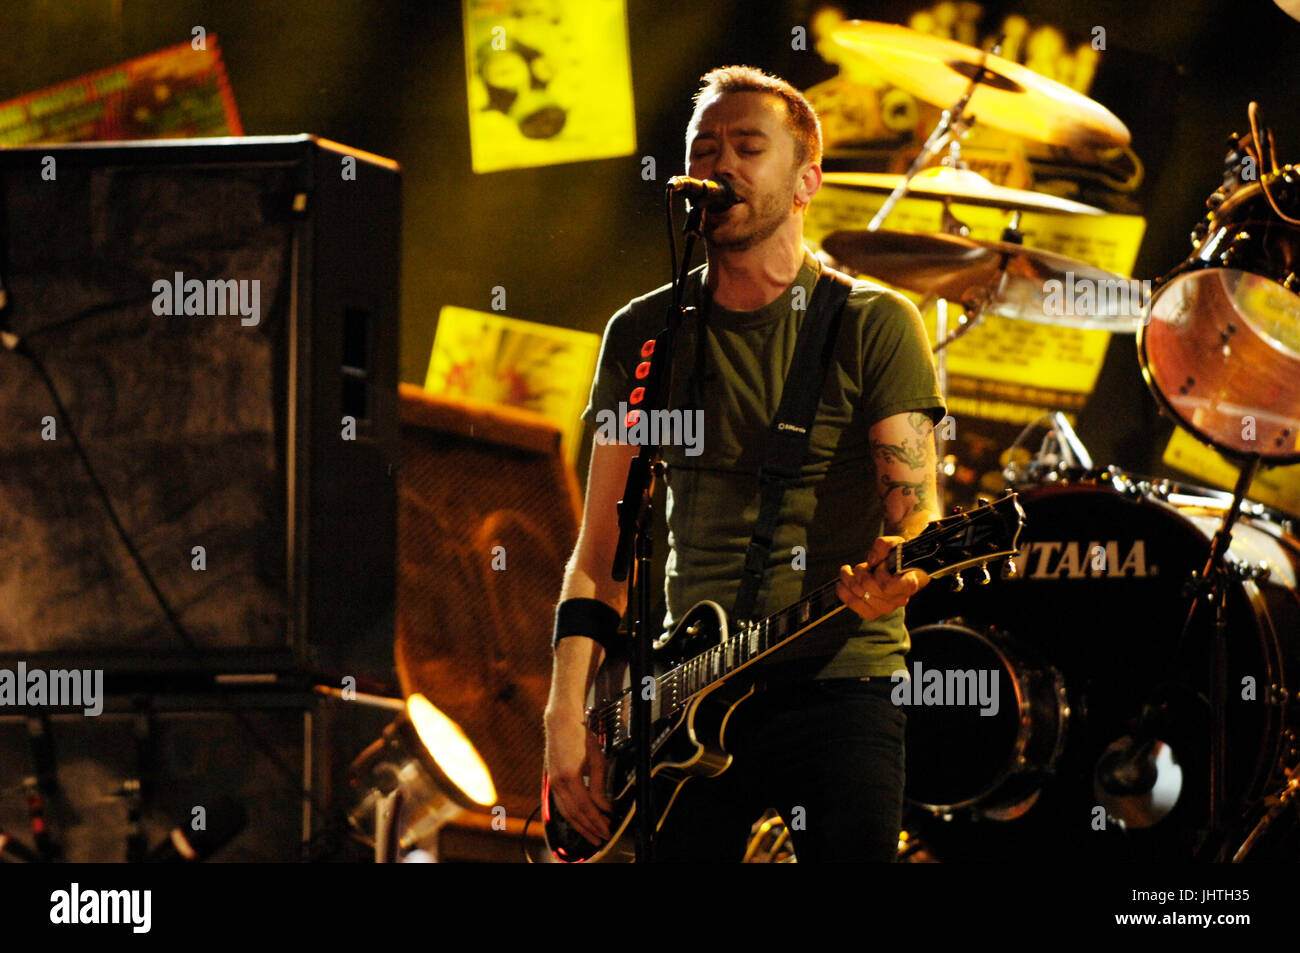 1594ede6e248be Tim McIlrath Rise Against performs Vans Warped Tour 15th Anniversary  Celebration Club Nokia September 6